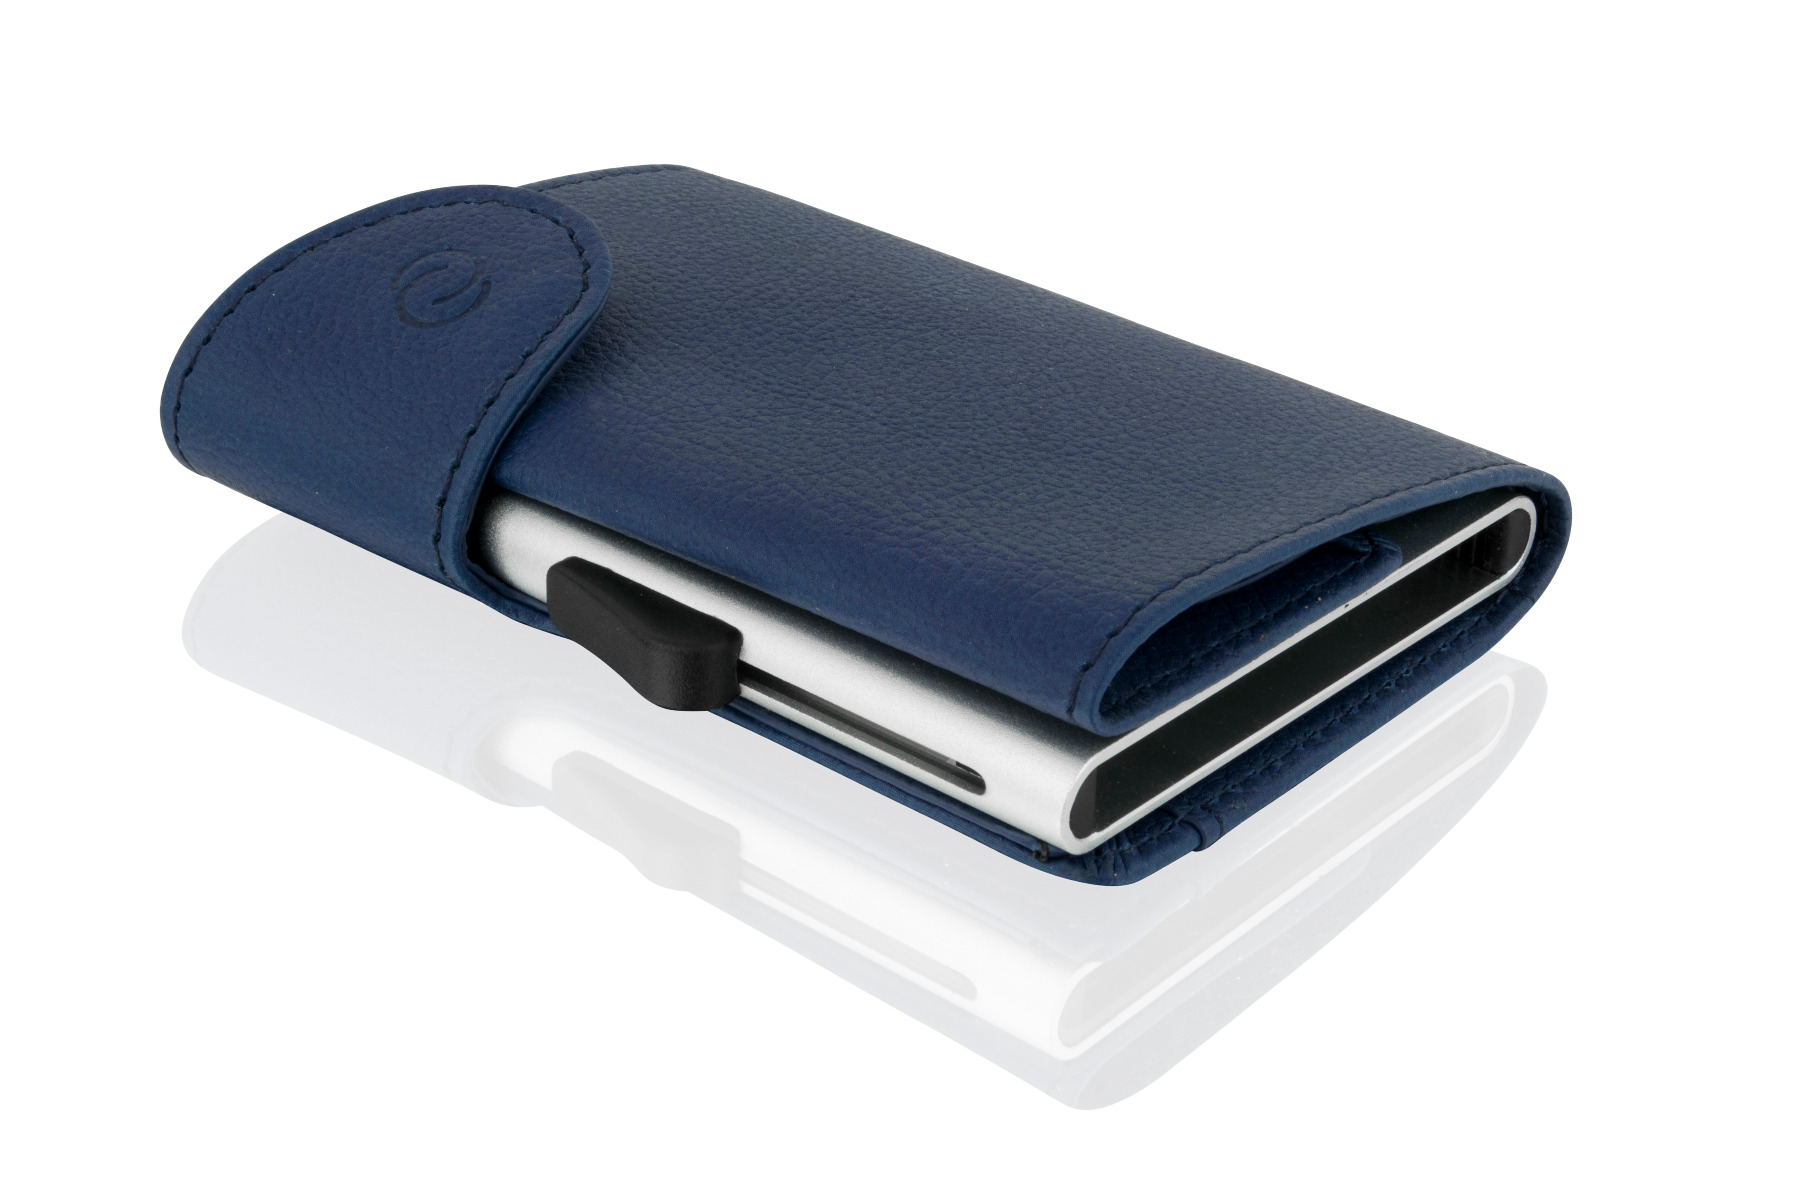 Woodland Leathers Blue Leather Wallet and C-Secure Cardprotector